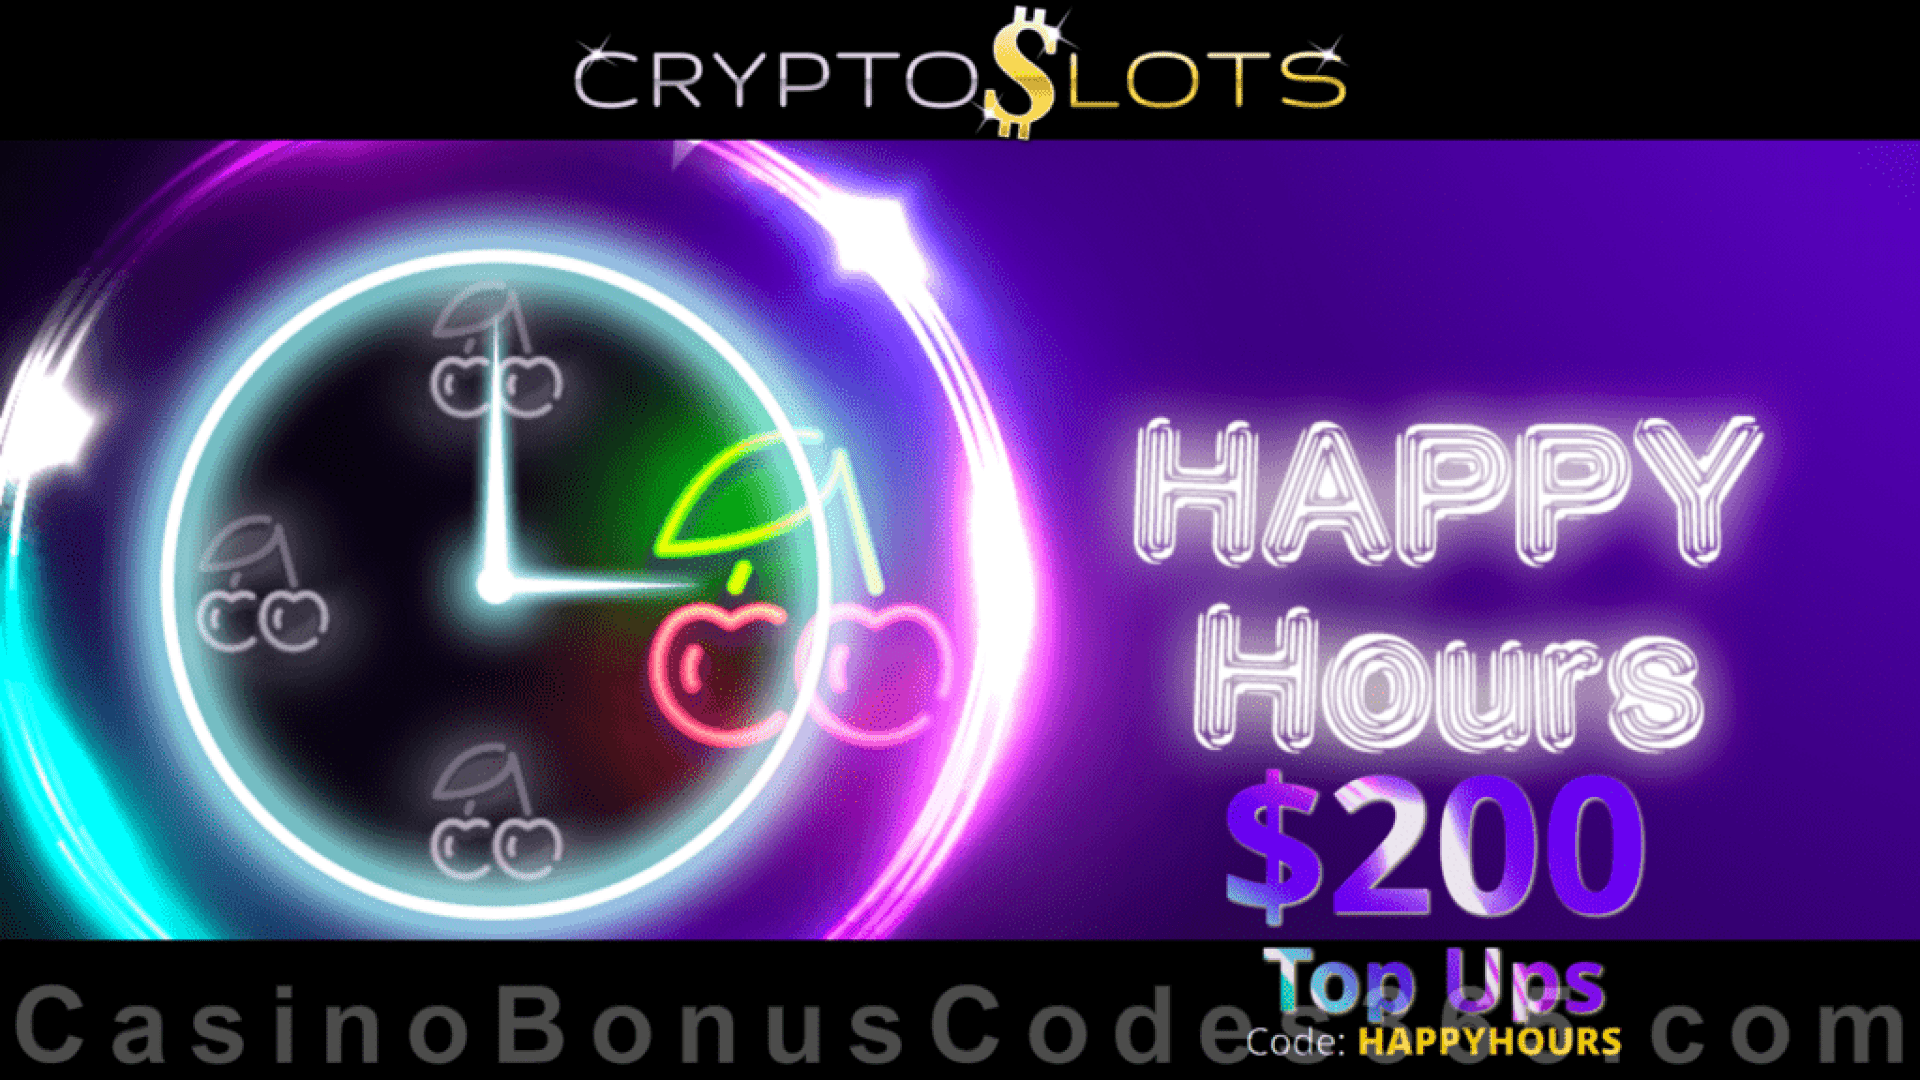 CryptoSlots $200 Happy Hours Top Ups Special Bonus